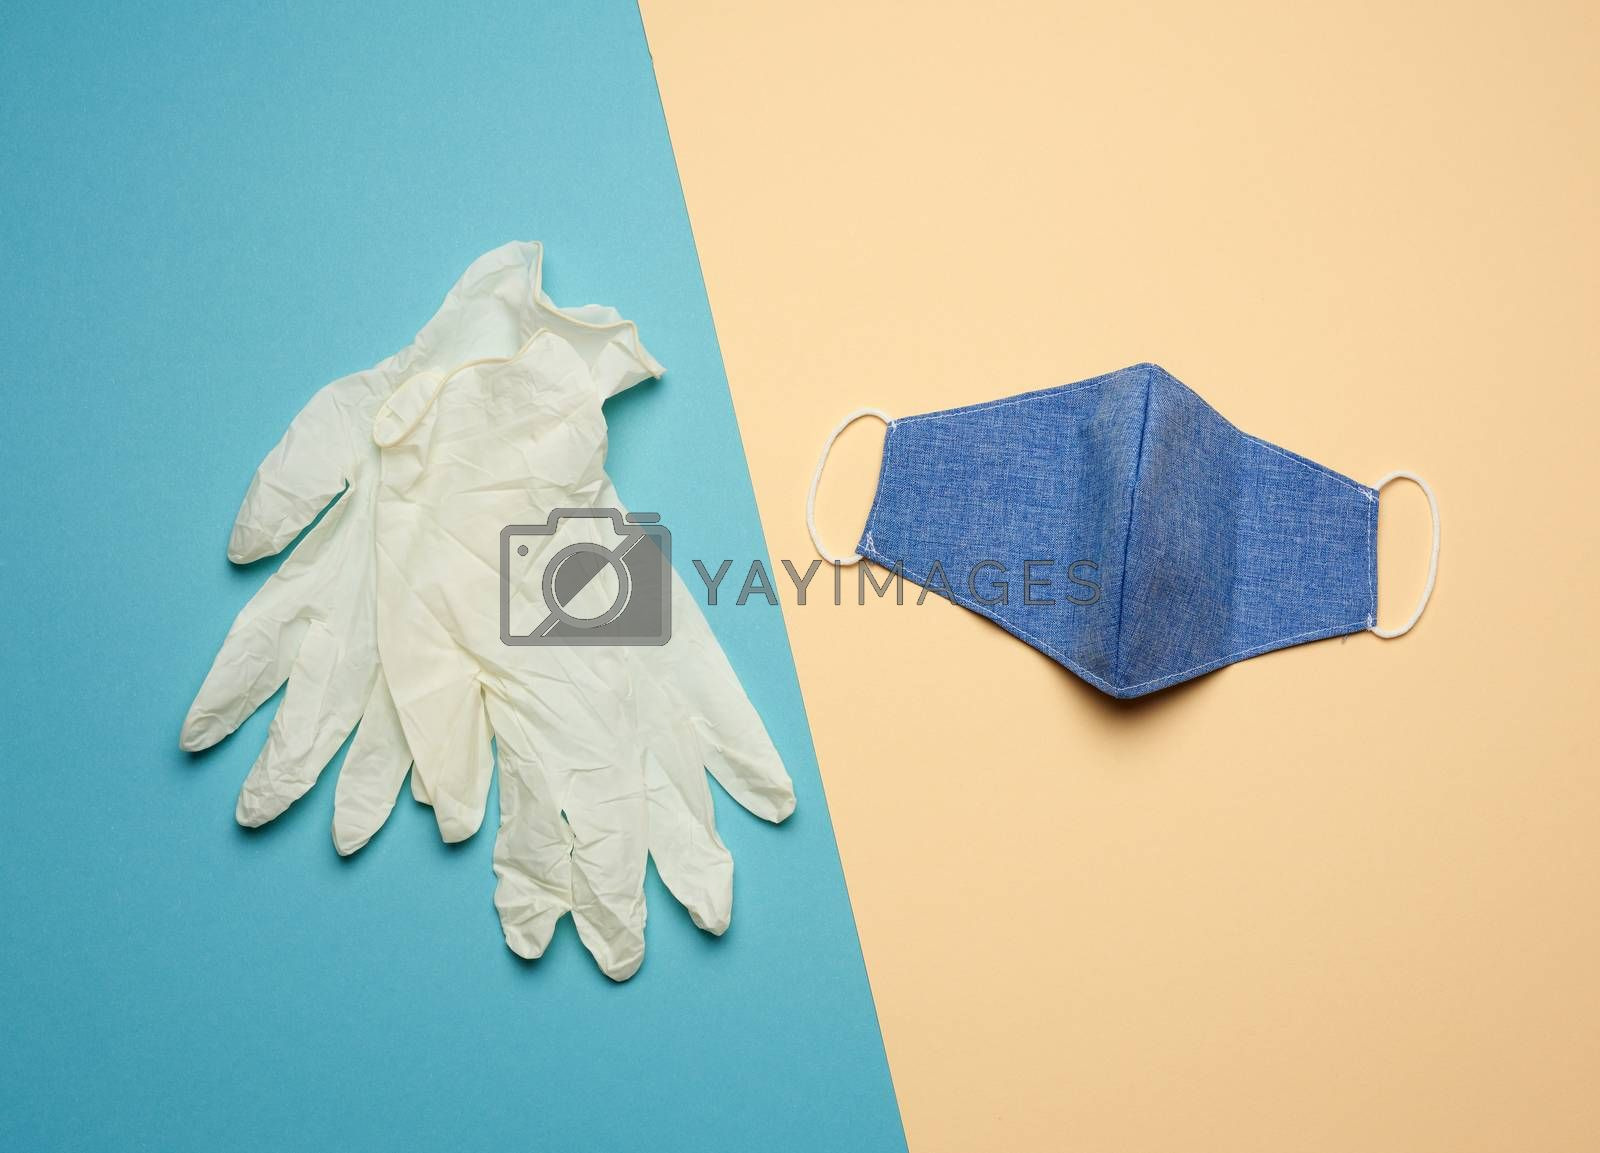 white latex gloves and blue reusable textile mask on a blue beige background, hygiene and virus protection accessories for epidemics and pandemics, overhead view